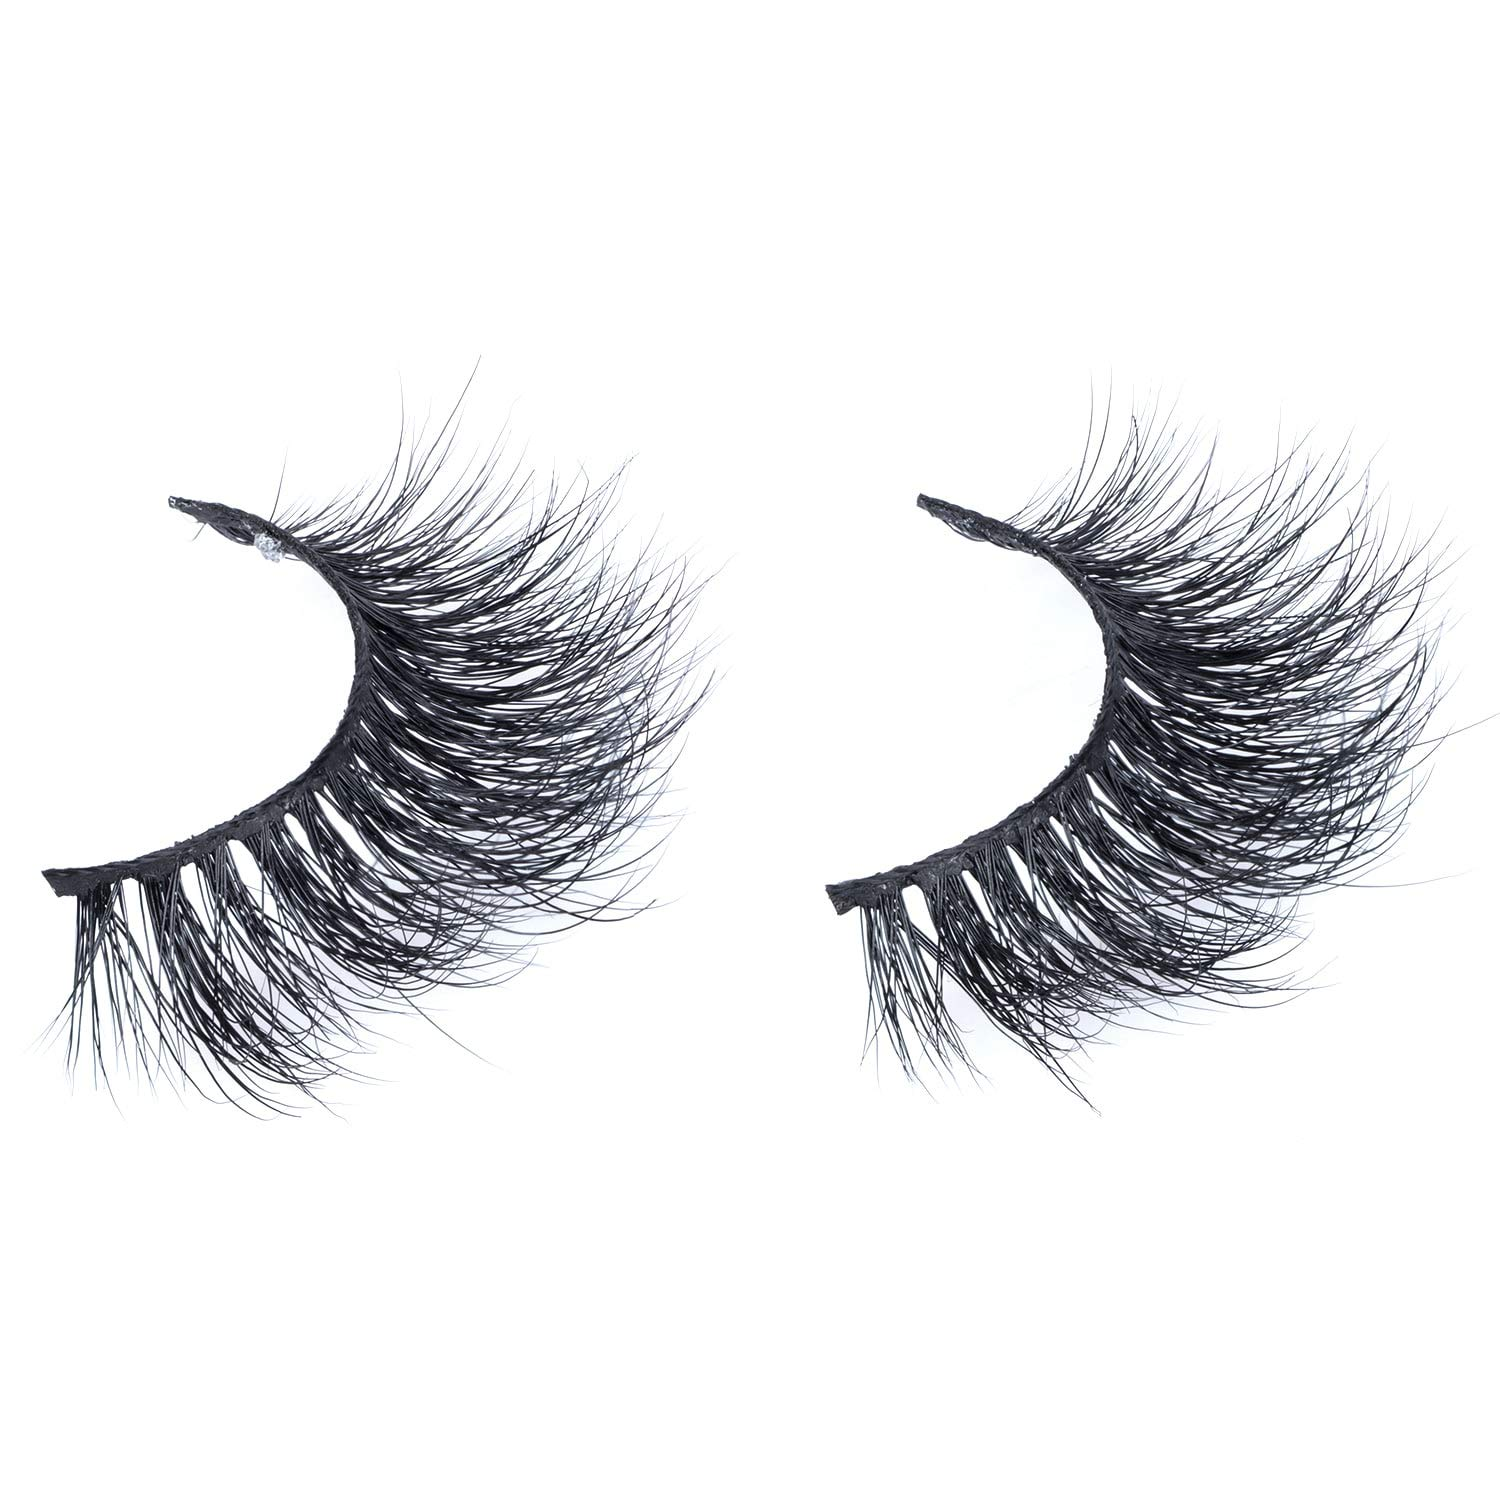 Arison Lashes 3D Mink Fur False Eyelashes Fake Lashes Women's Makeup Natural Soft Individual Long Hand-made 1 Pair Package (3D661)